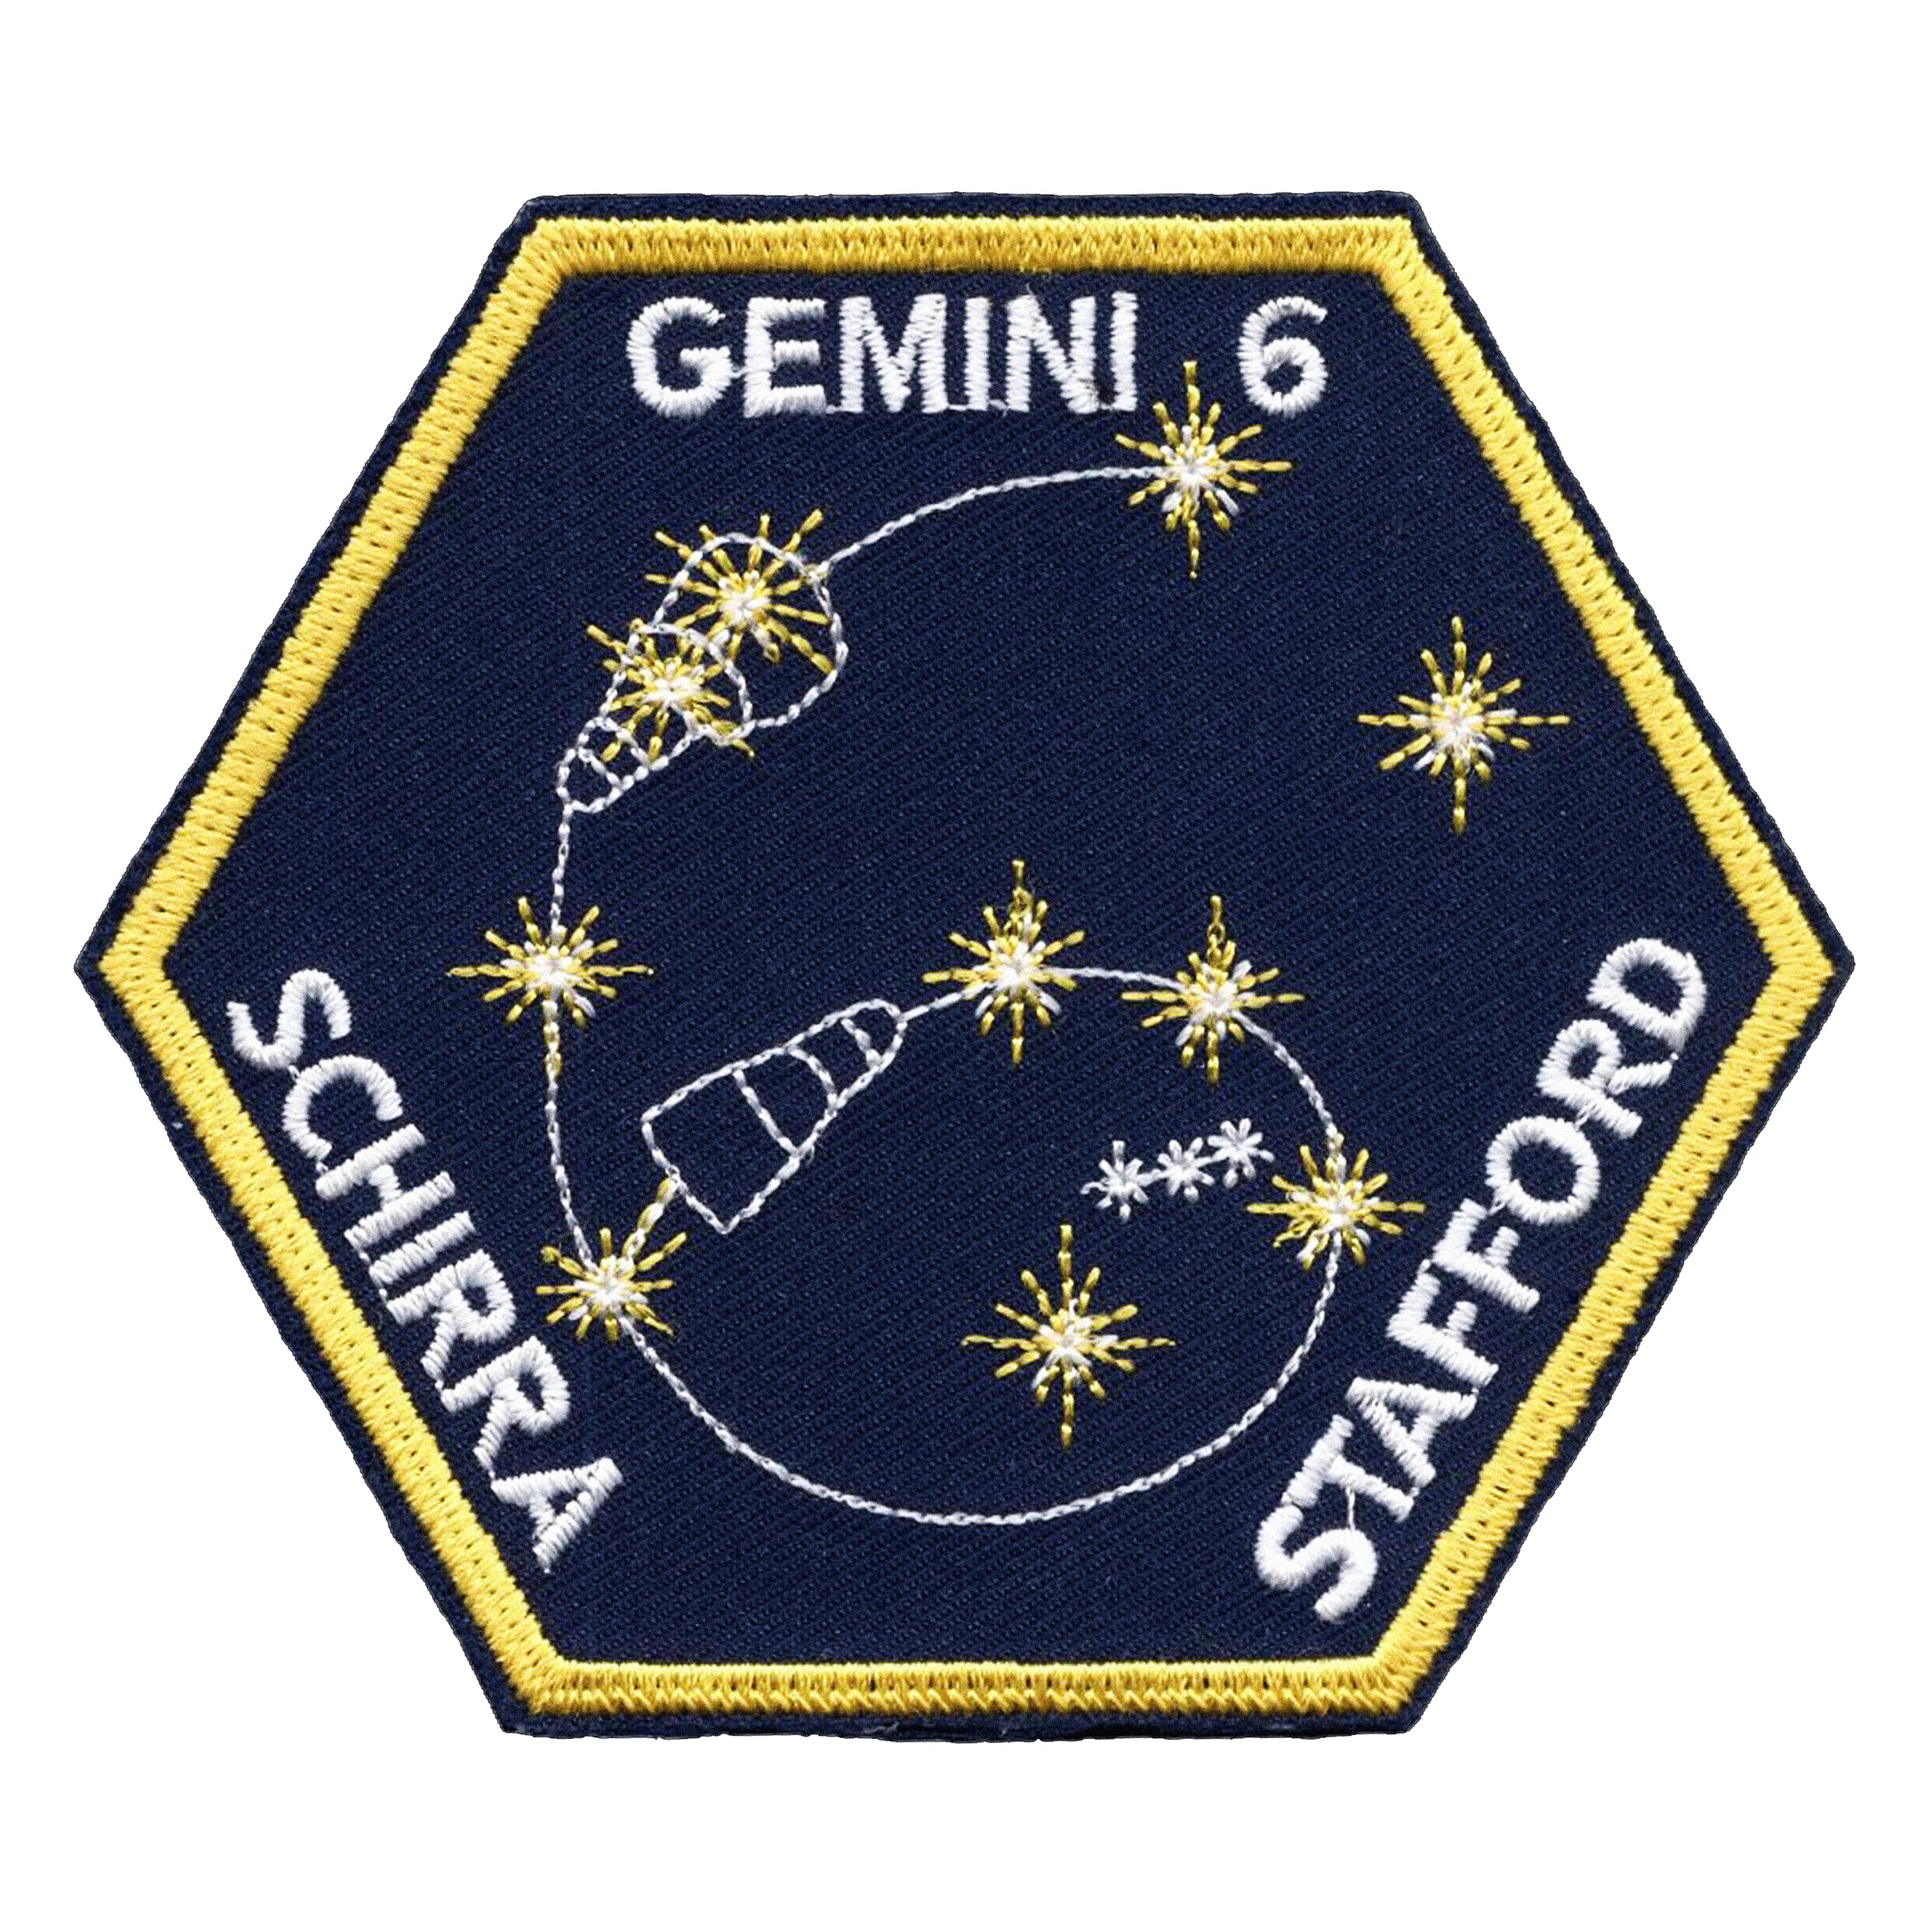 gemini space mission badges -#main